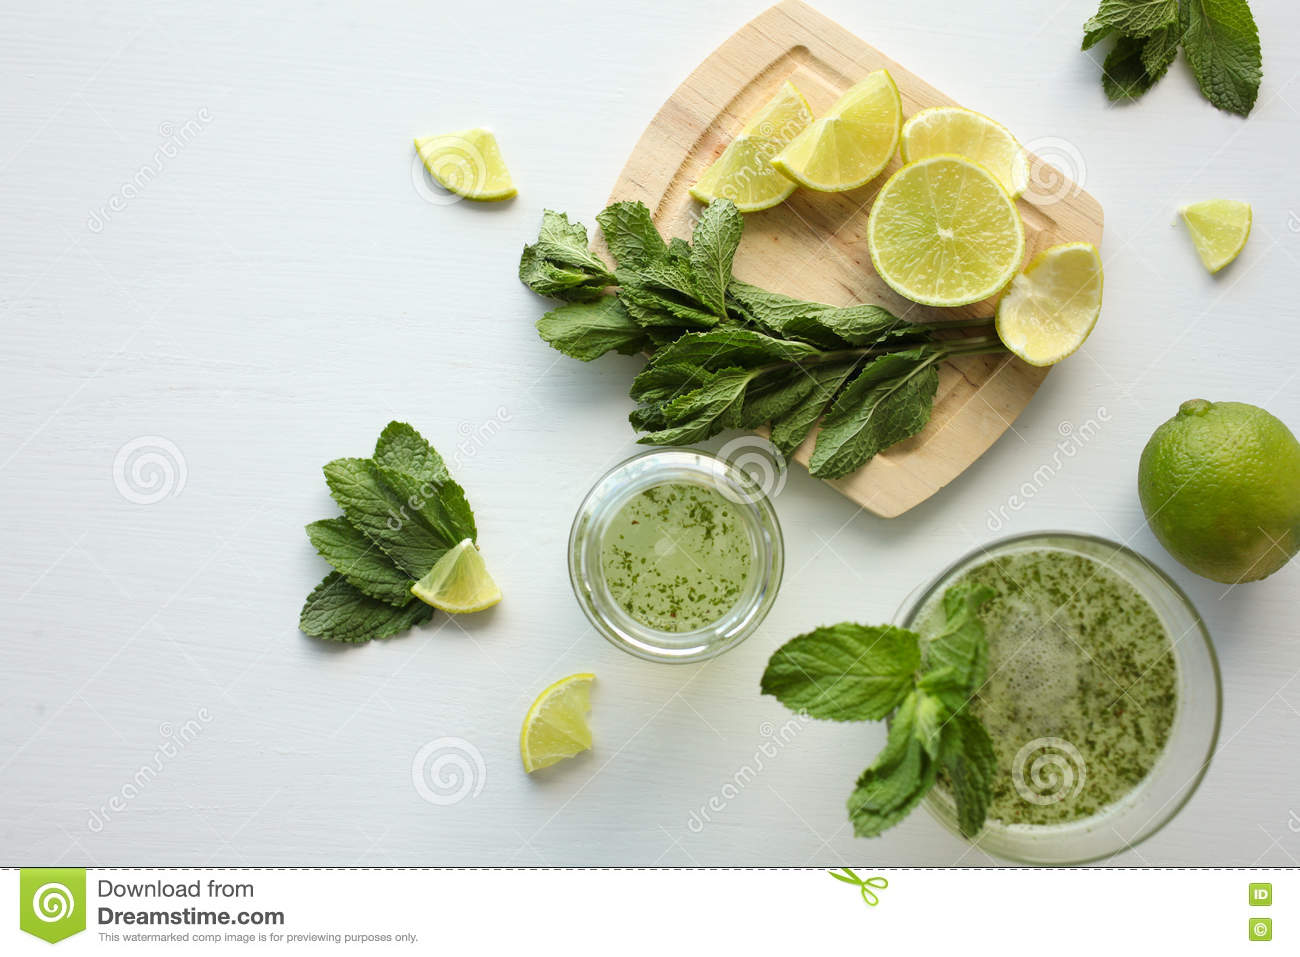 Fresh home-made lemonade with lemon, lime and mint in a glass on white background and ingredients laying on the table